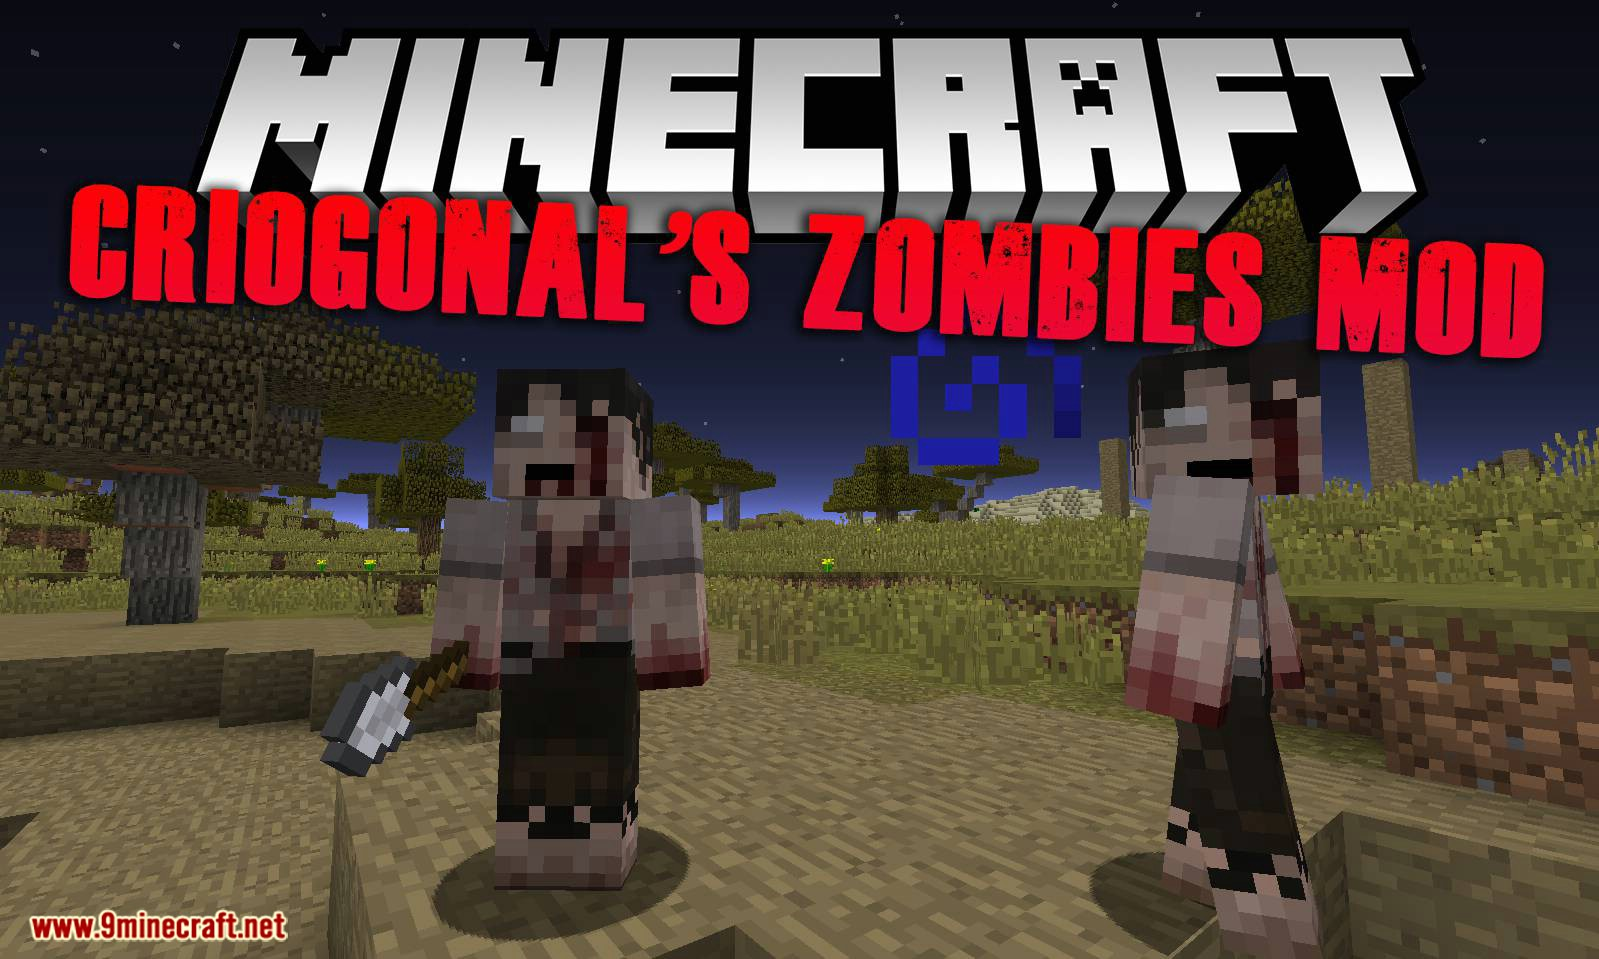 Criogonal_s Zombies Mod for minecraft logo